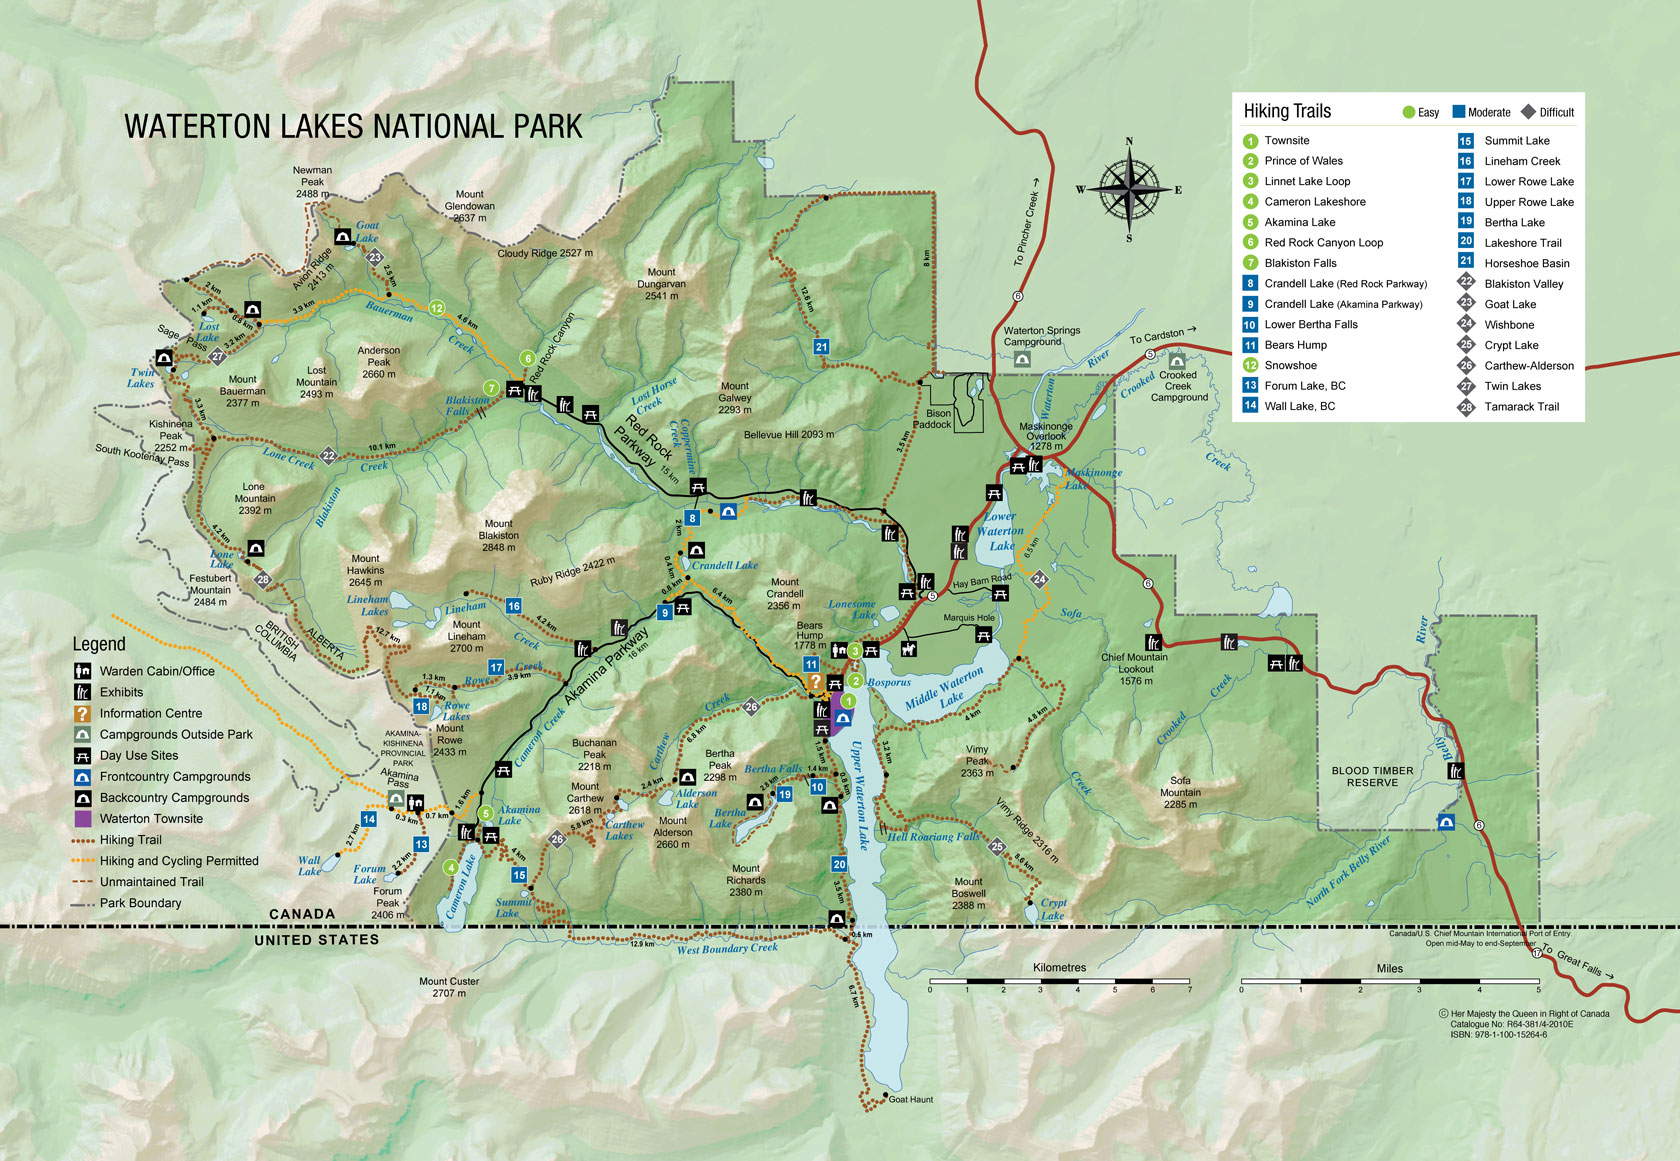 Map of Waterton Lakes National Park